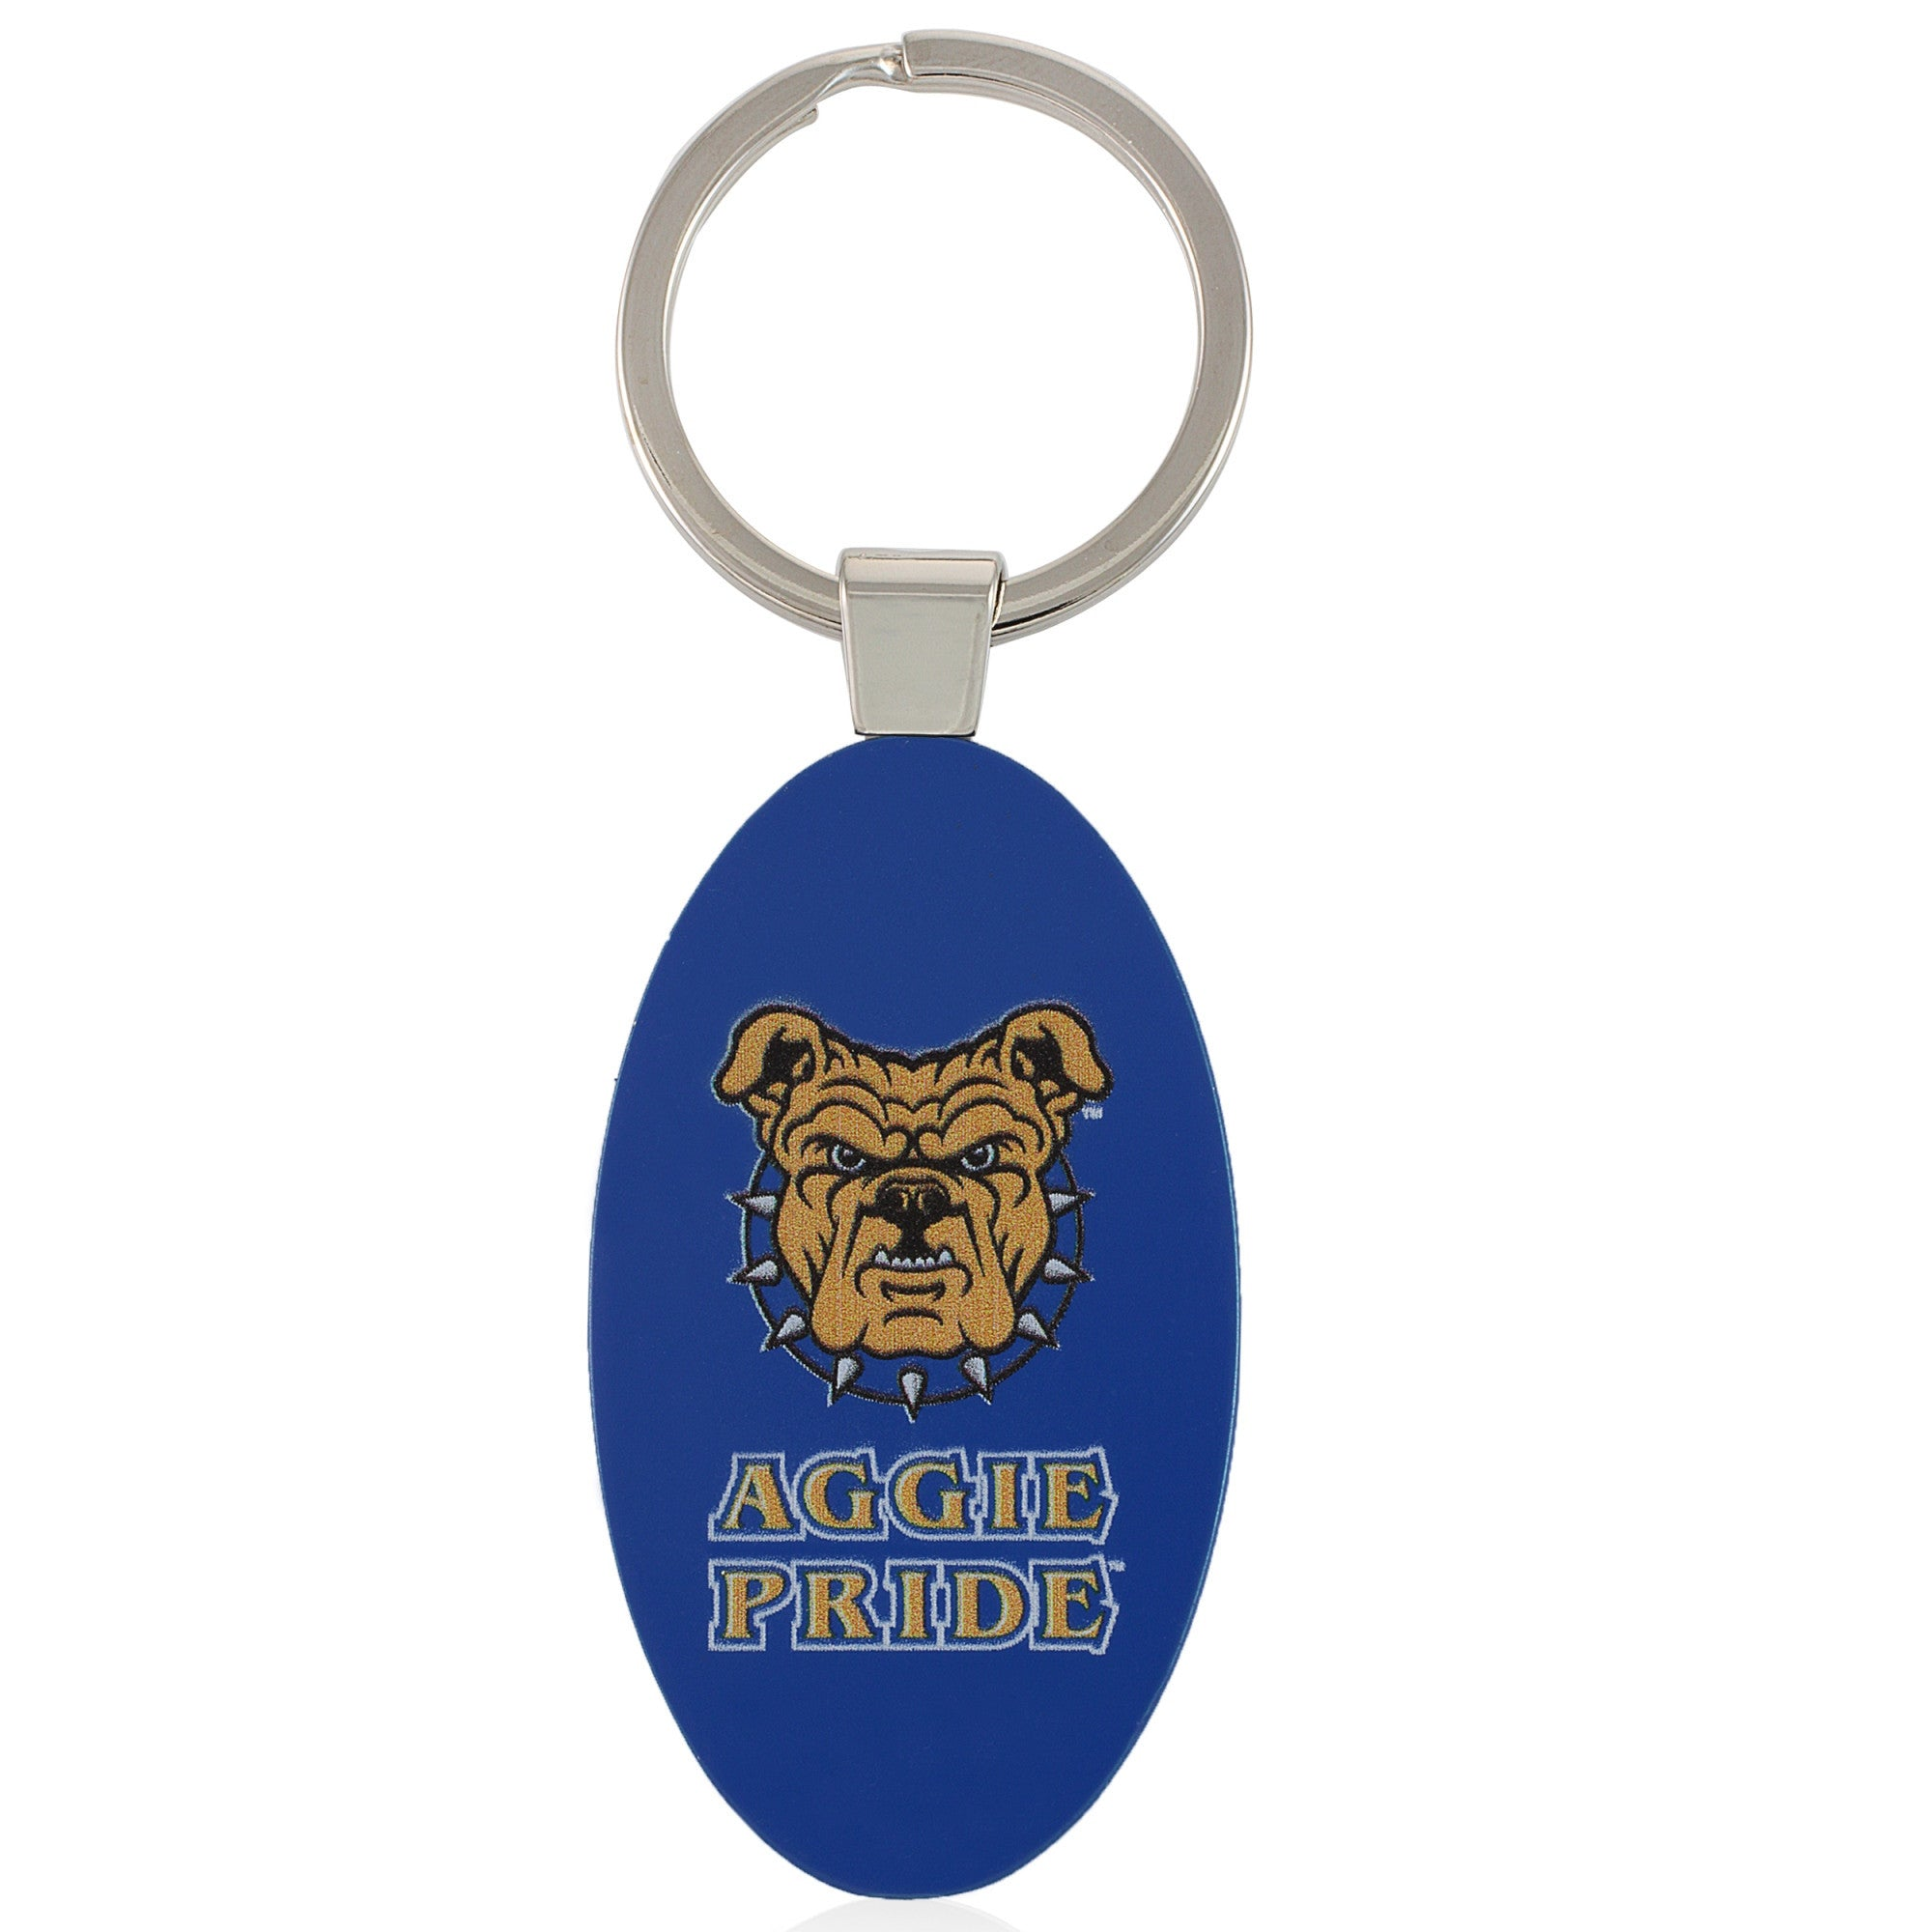 North Carolina A&T State University Aggie Pride Key Chain